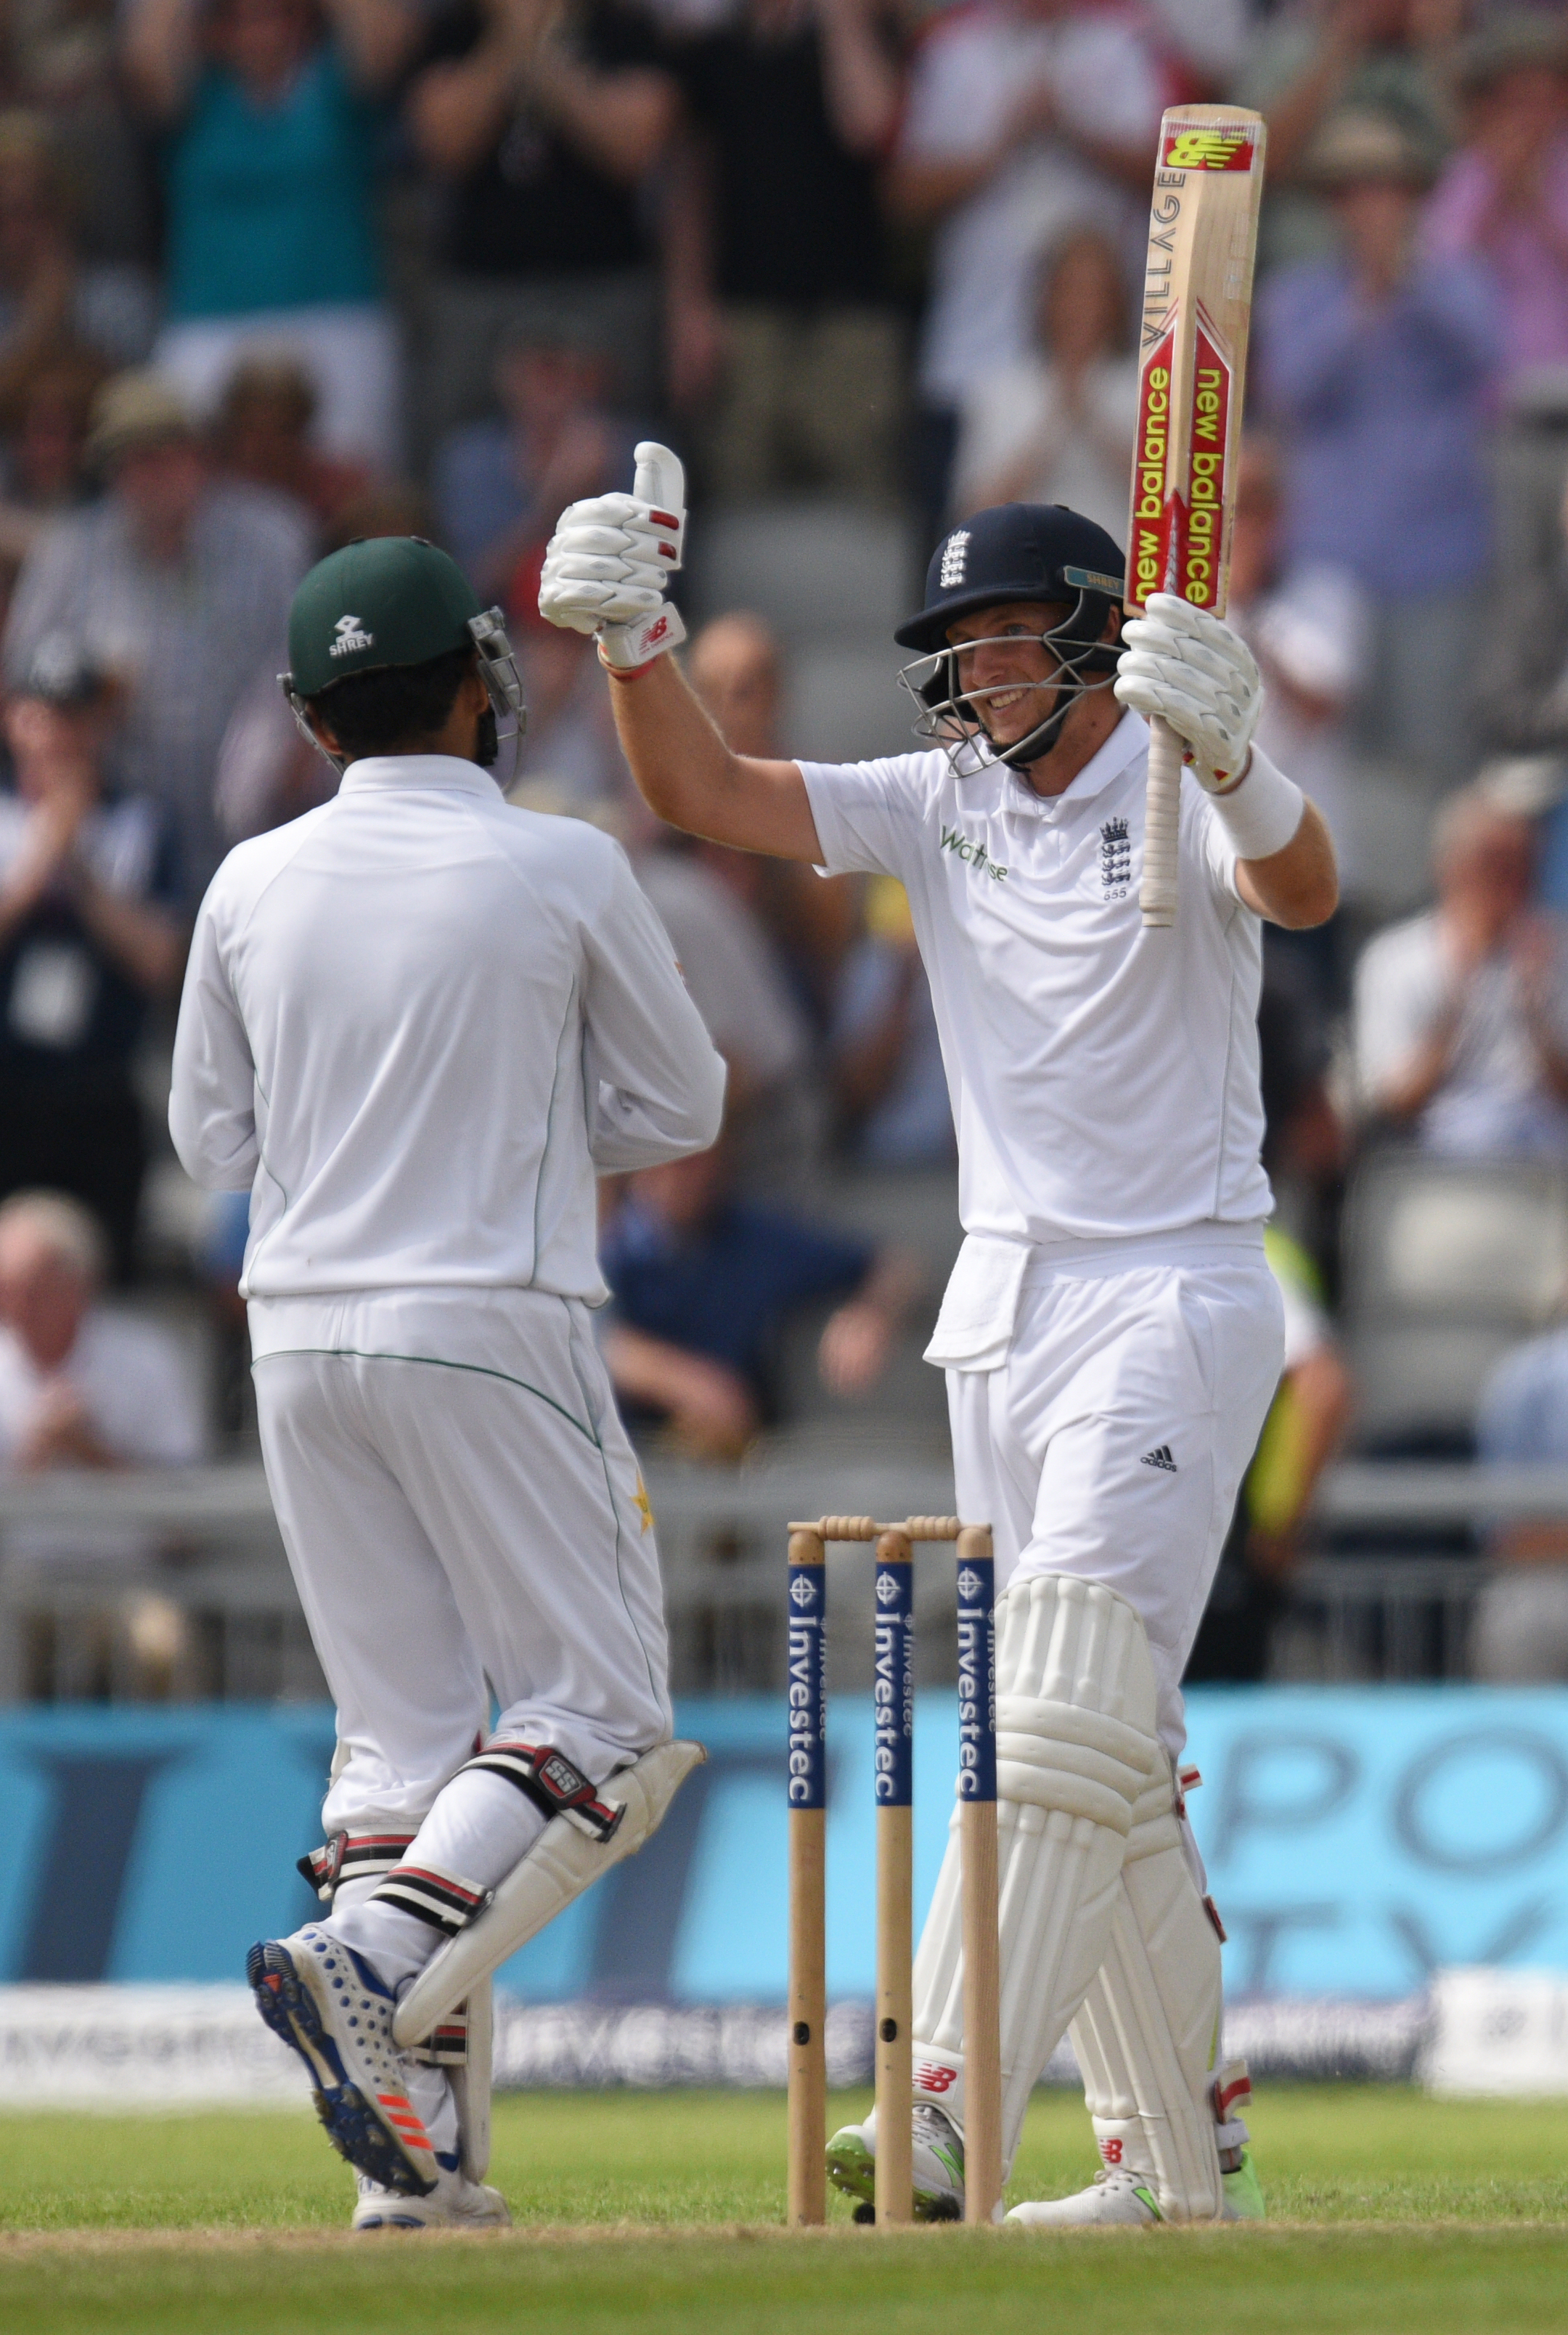 England's Joe Root celebrates reaching 250 on the second day of the second Test cricket match between England and Pakistan at Old Trafford Cricket Ground in Manchester, England on July 23, 2016. / AFP PHOTO / OLI SCARFF